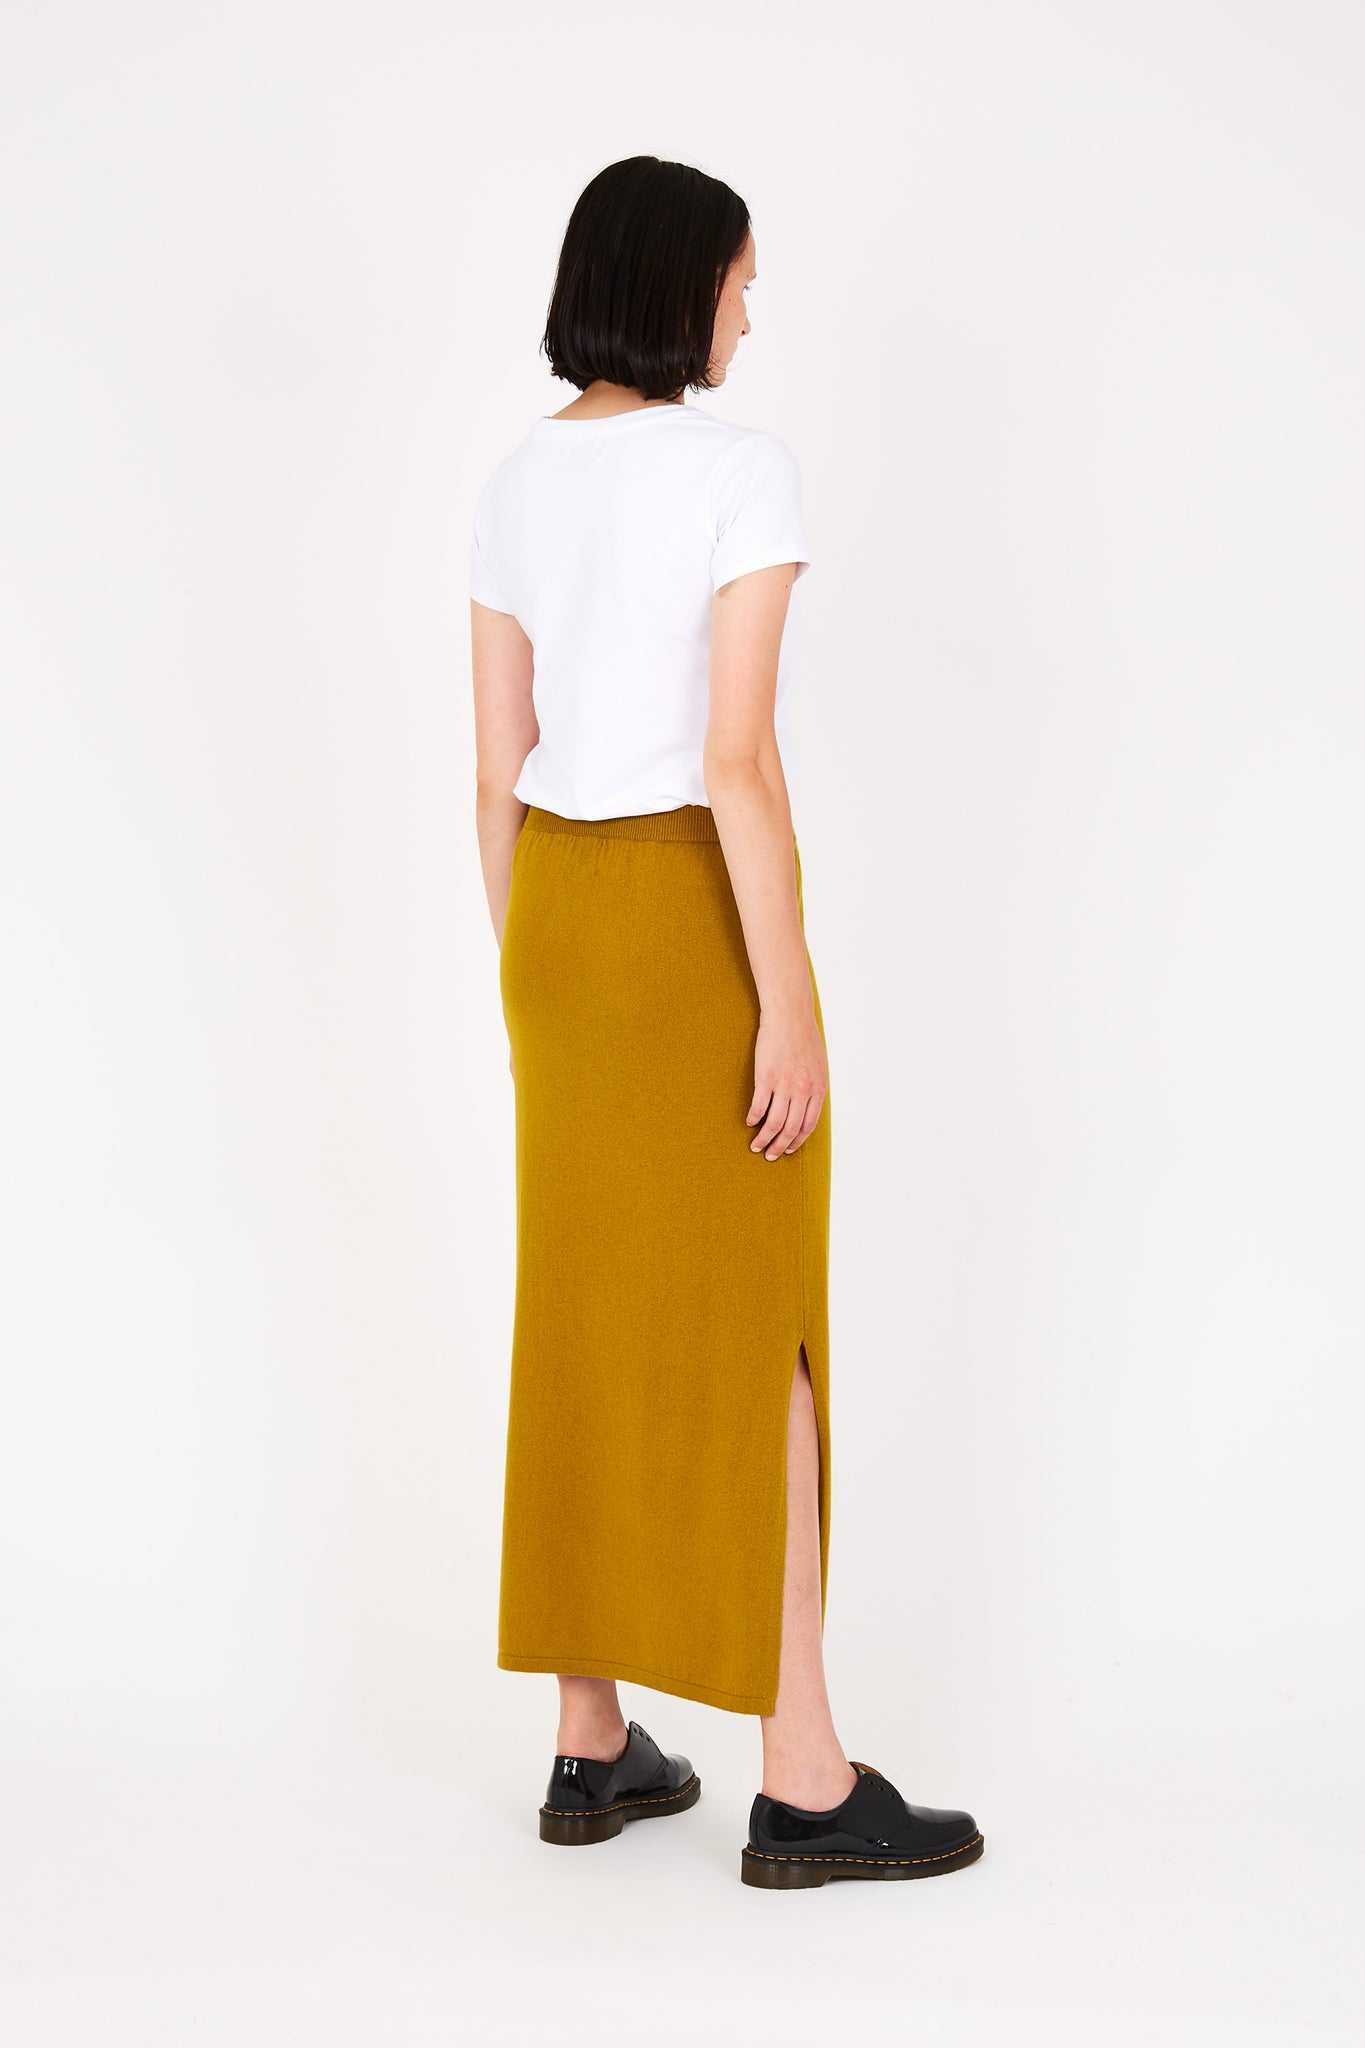 Kelly cashmere skirt in yellow